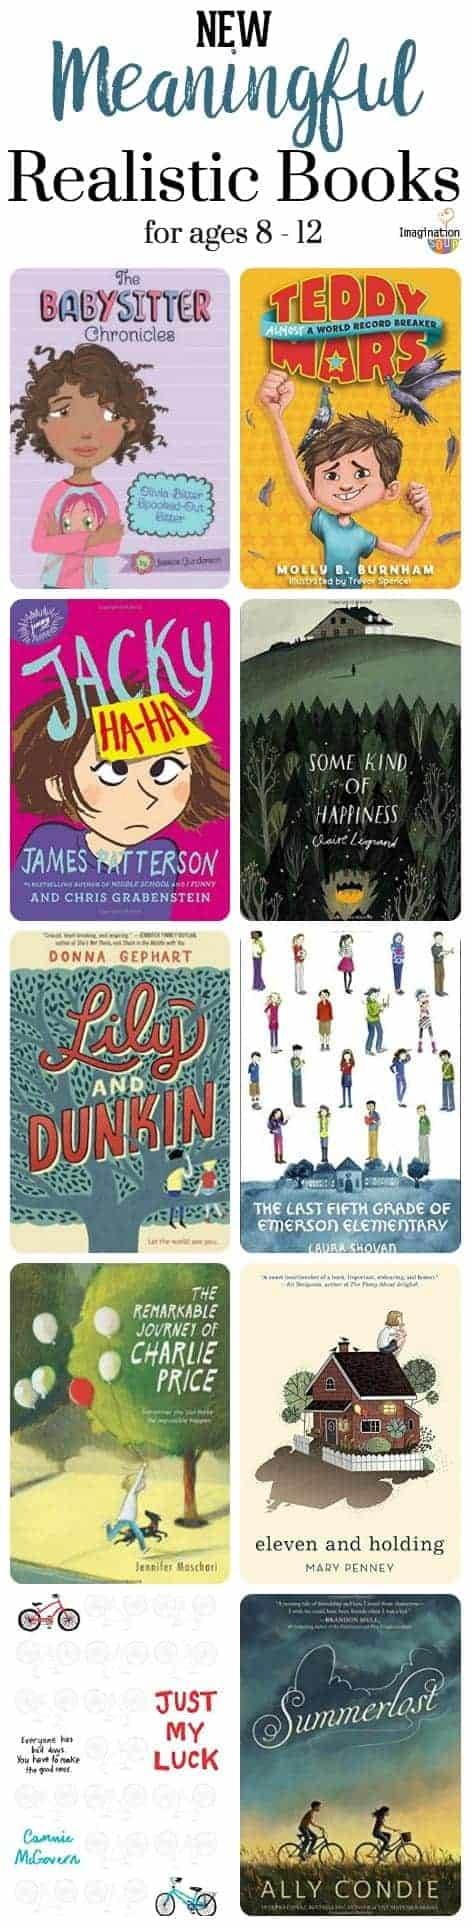 new, meaningful realistic books for ages 8 to 12